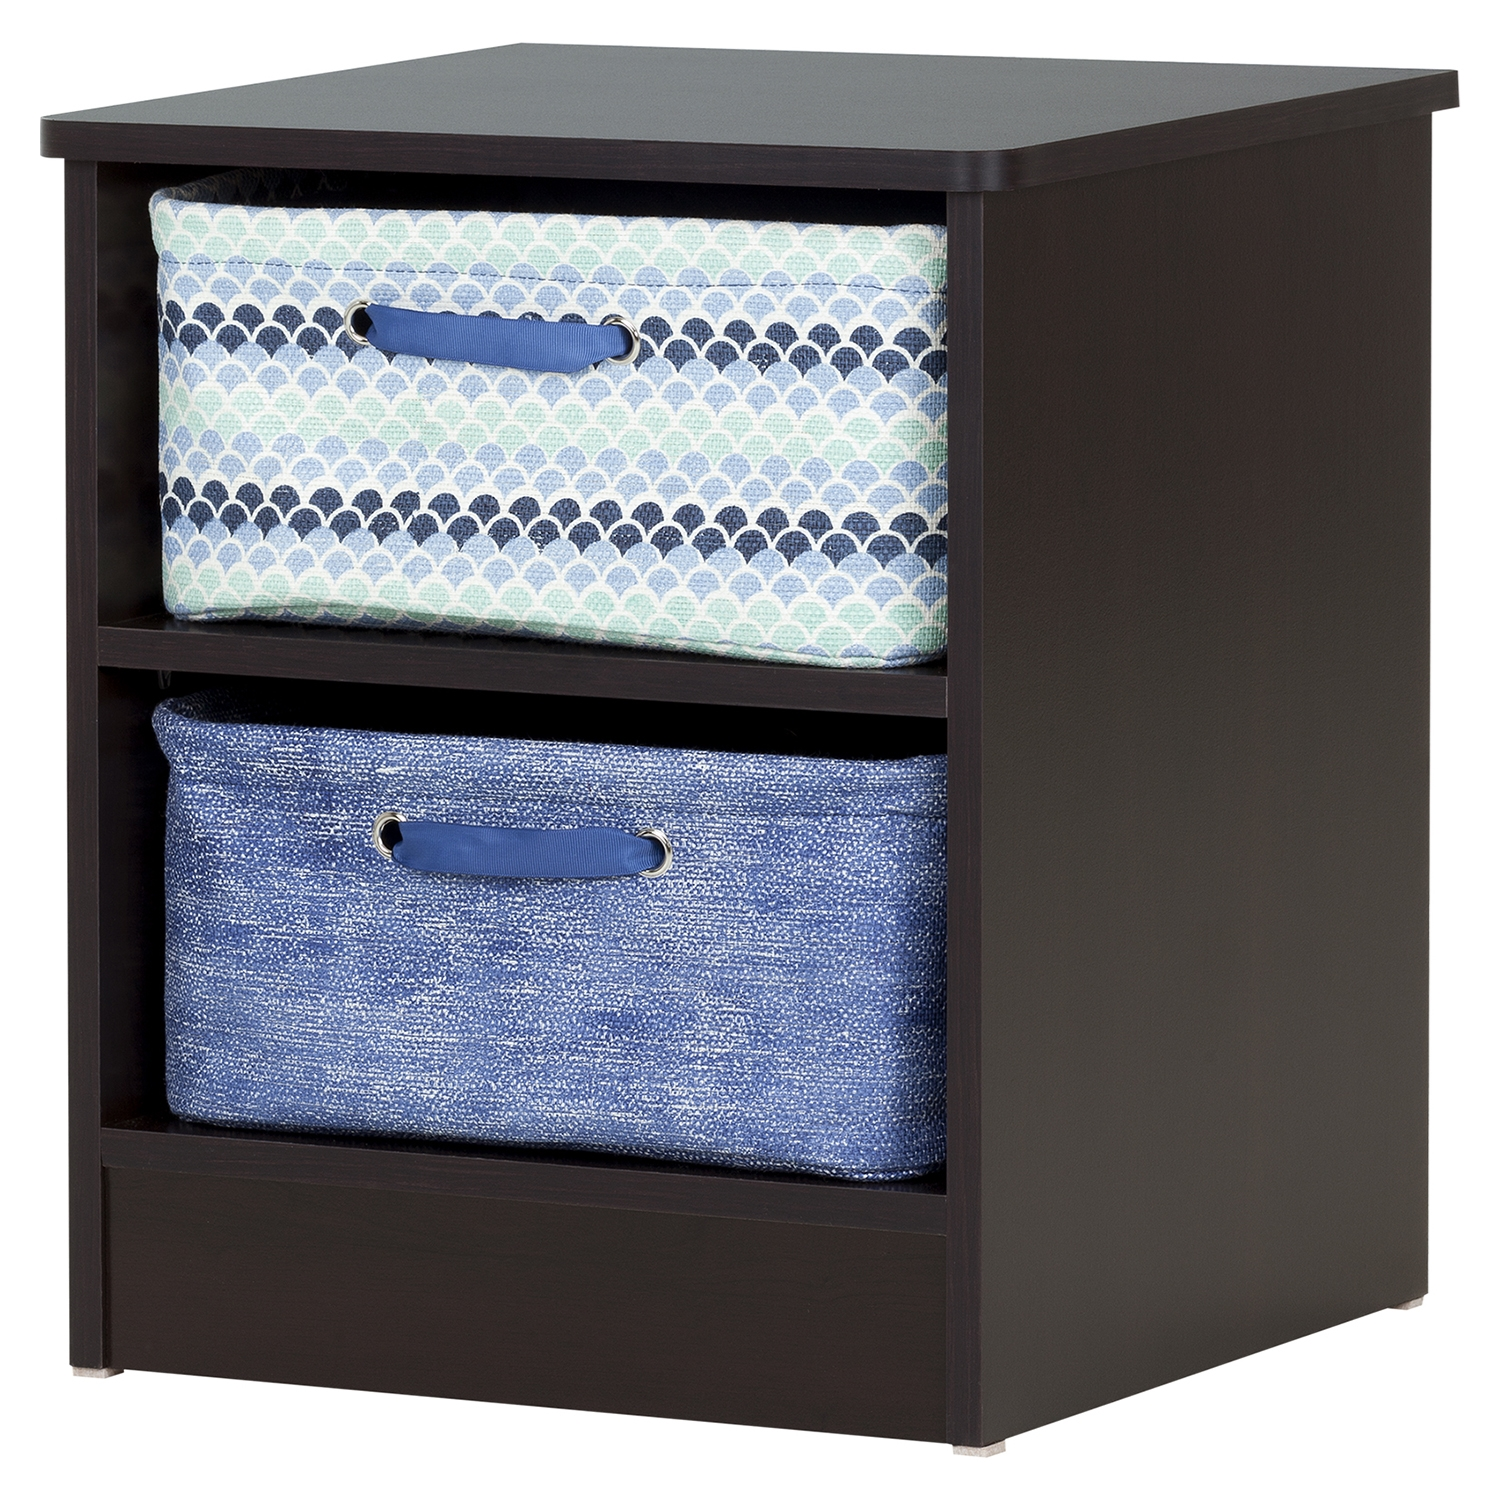 Libra Nightstand - 2 Storage Baskets, Chocolate